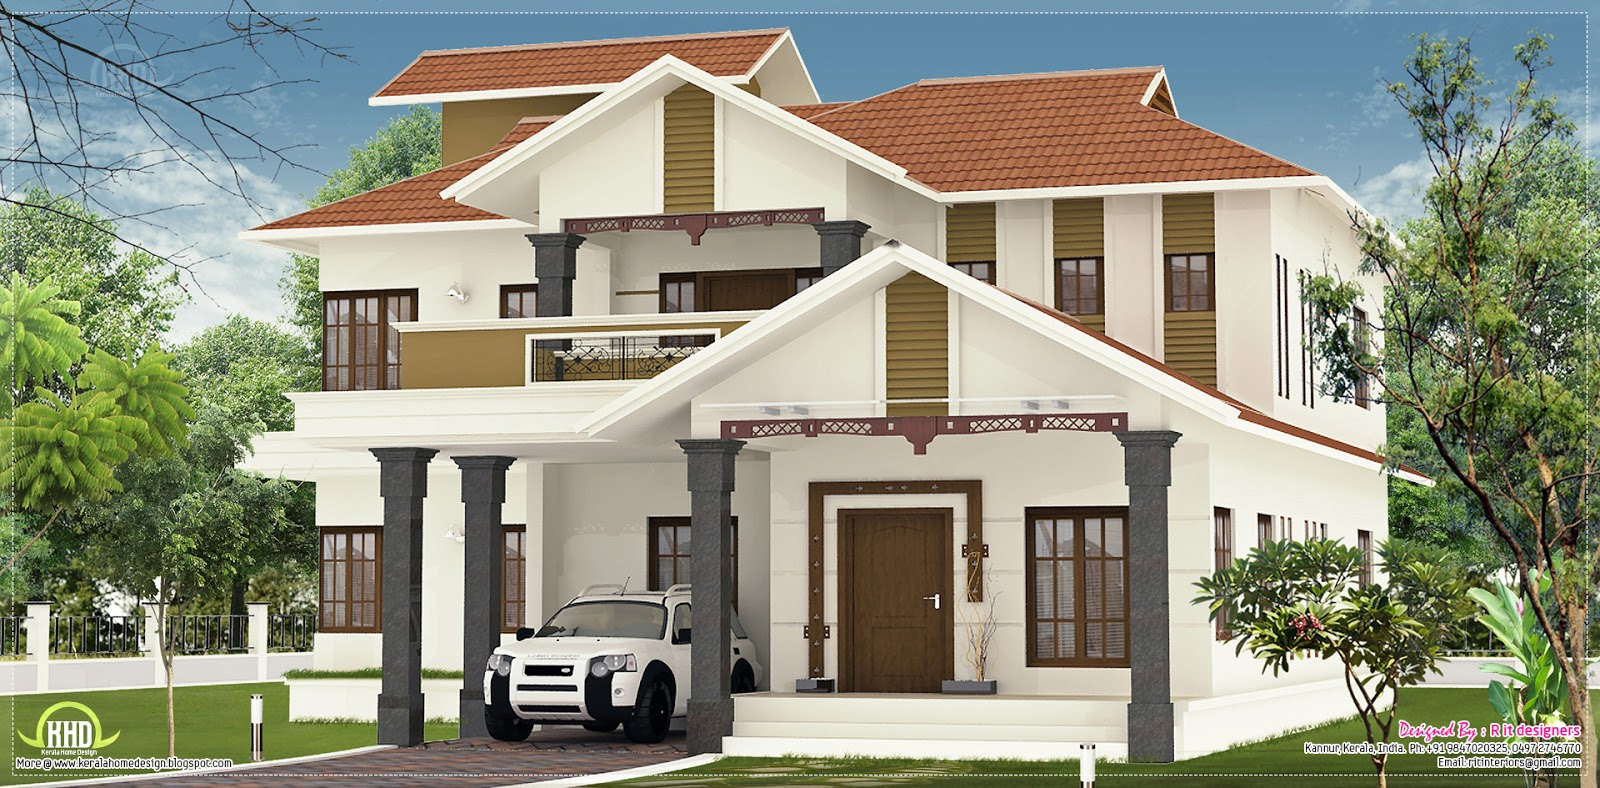 Nice villa elevation design in 2600 kerala home design and floor plans - Nice home designs ...